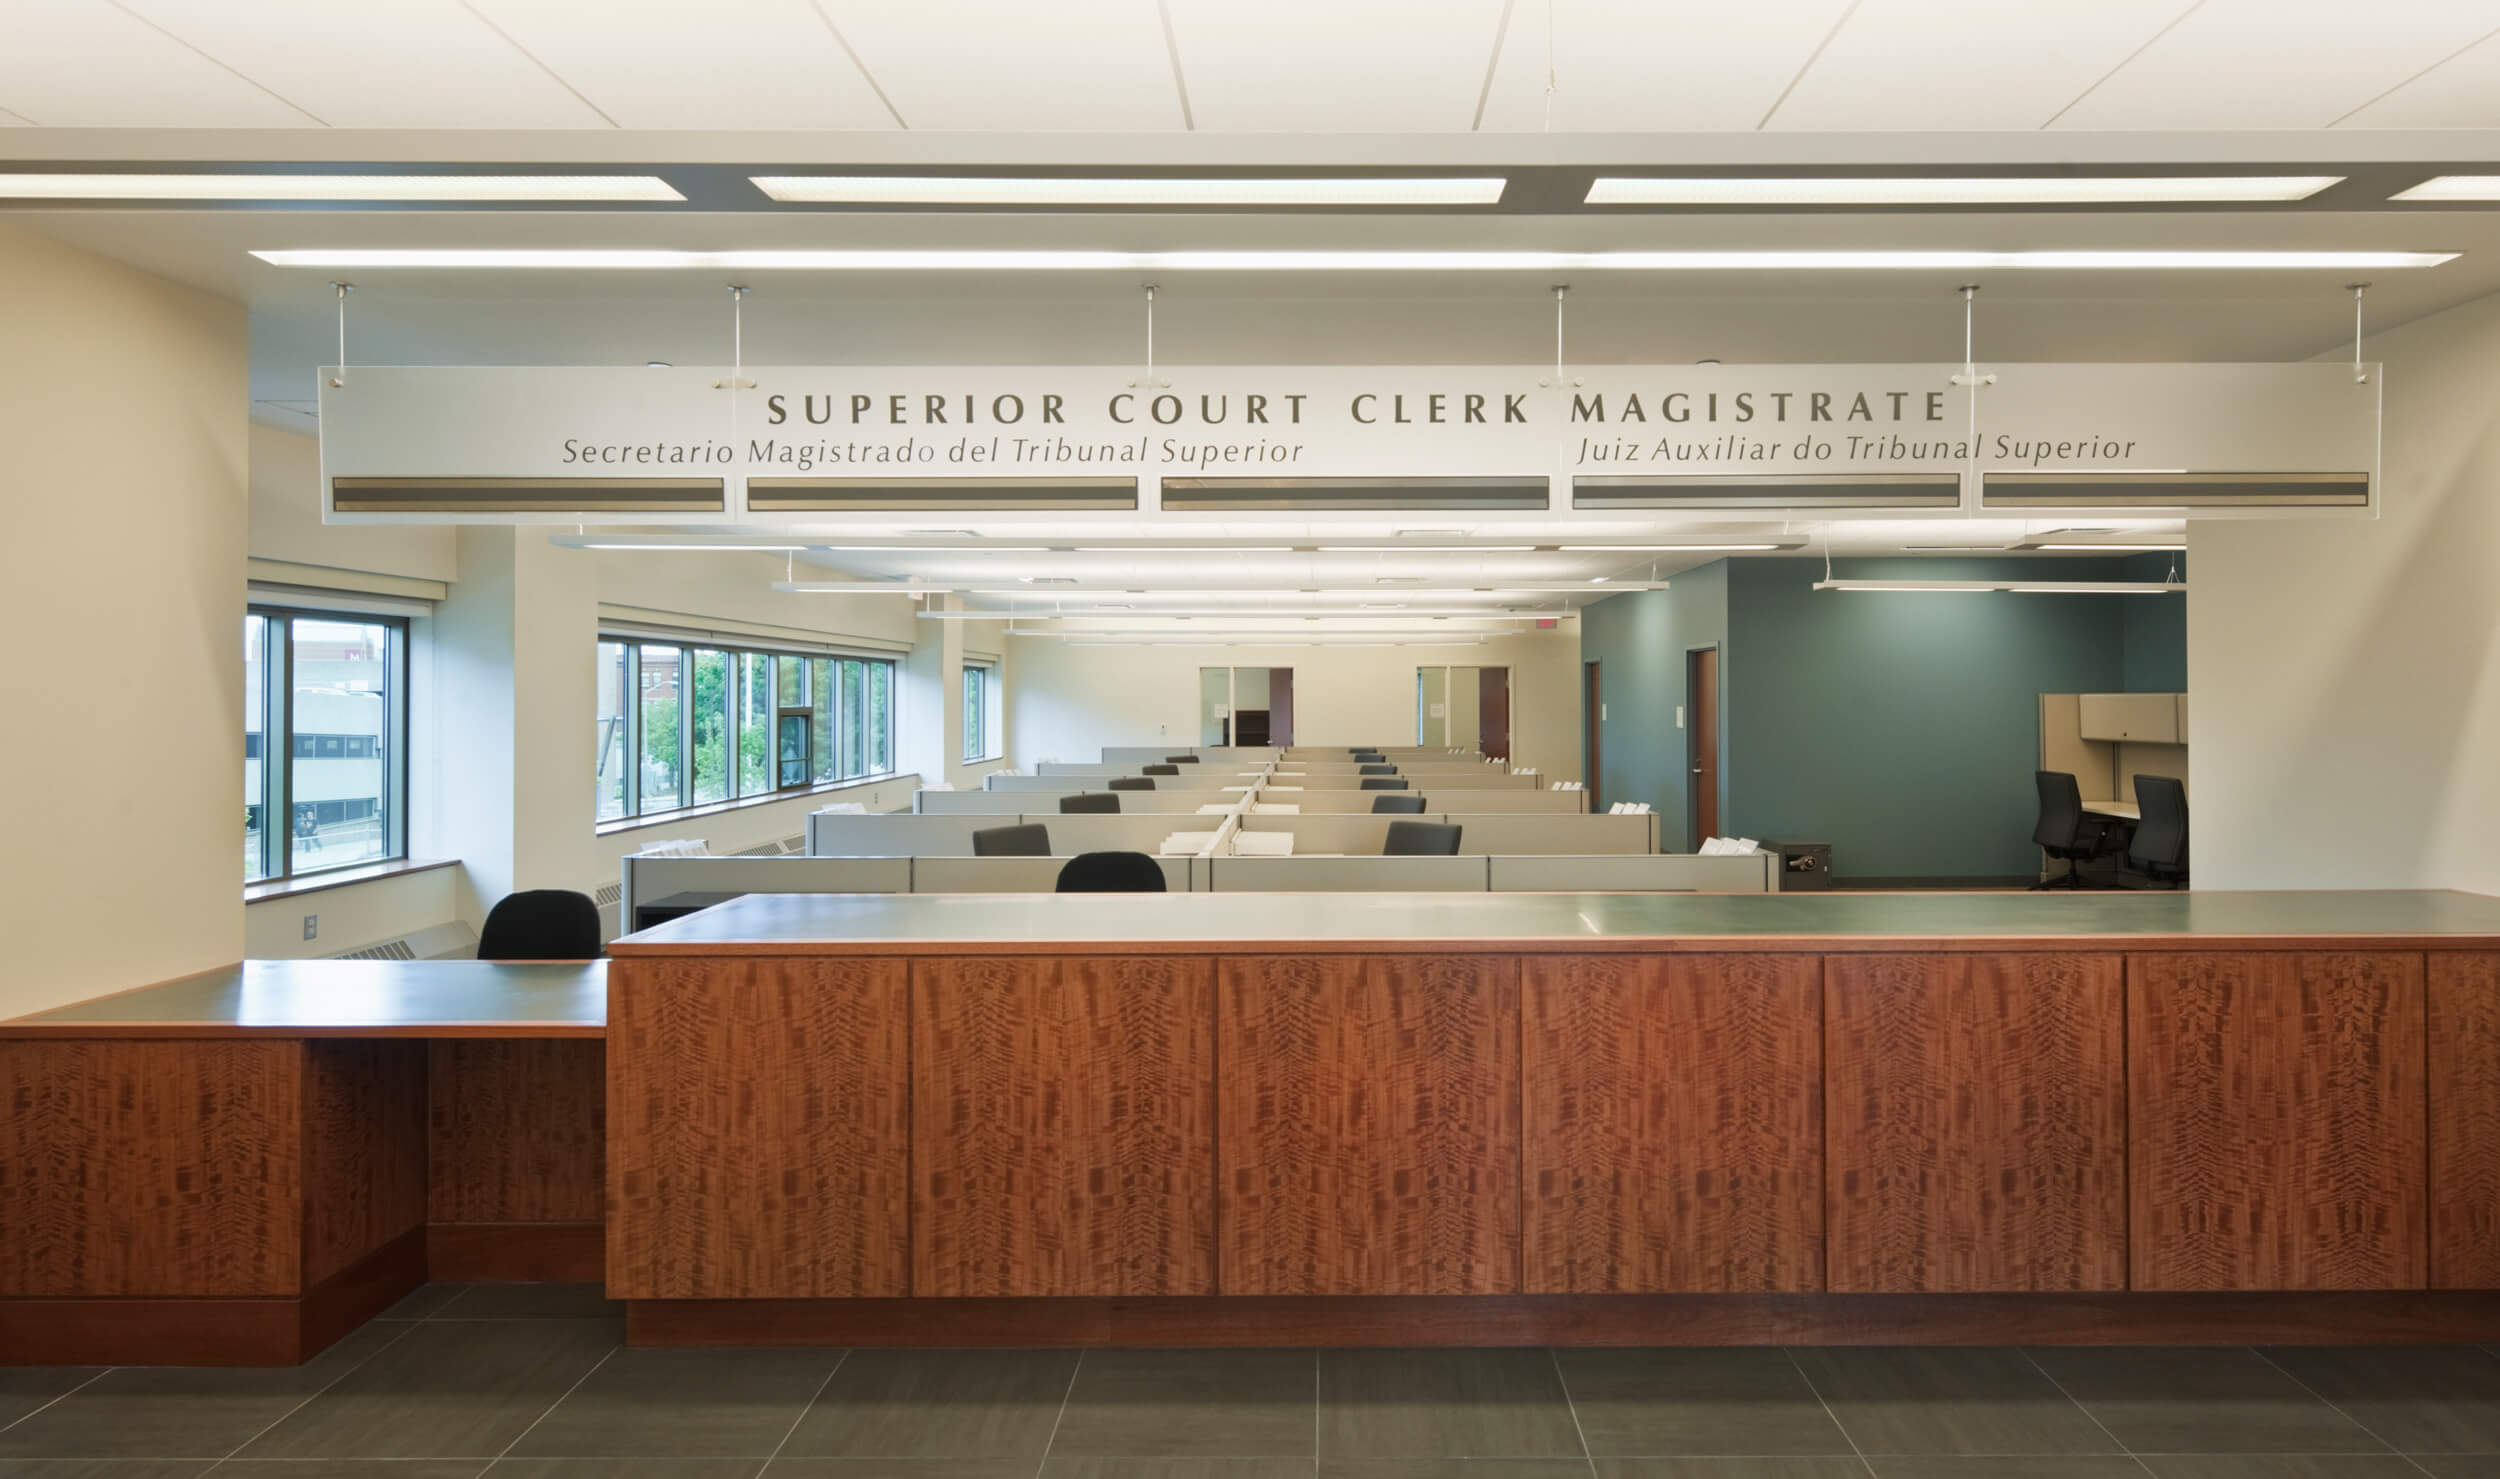 Superior Court Clerk Magistrate with wooden front desk and cubicles behind it.